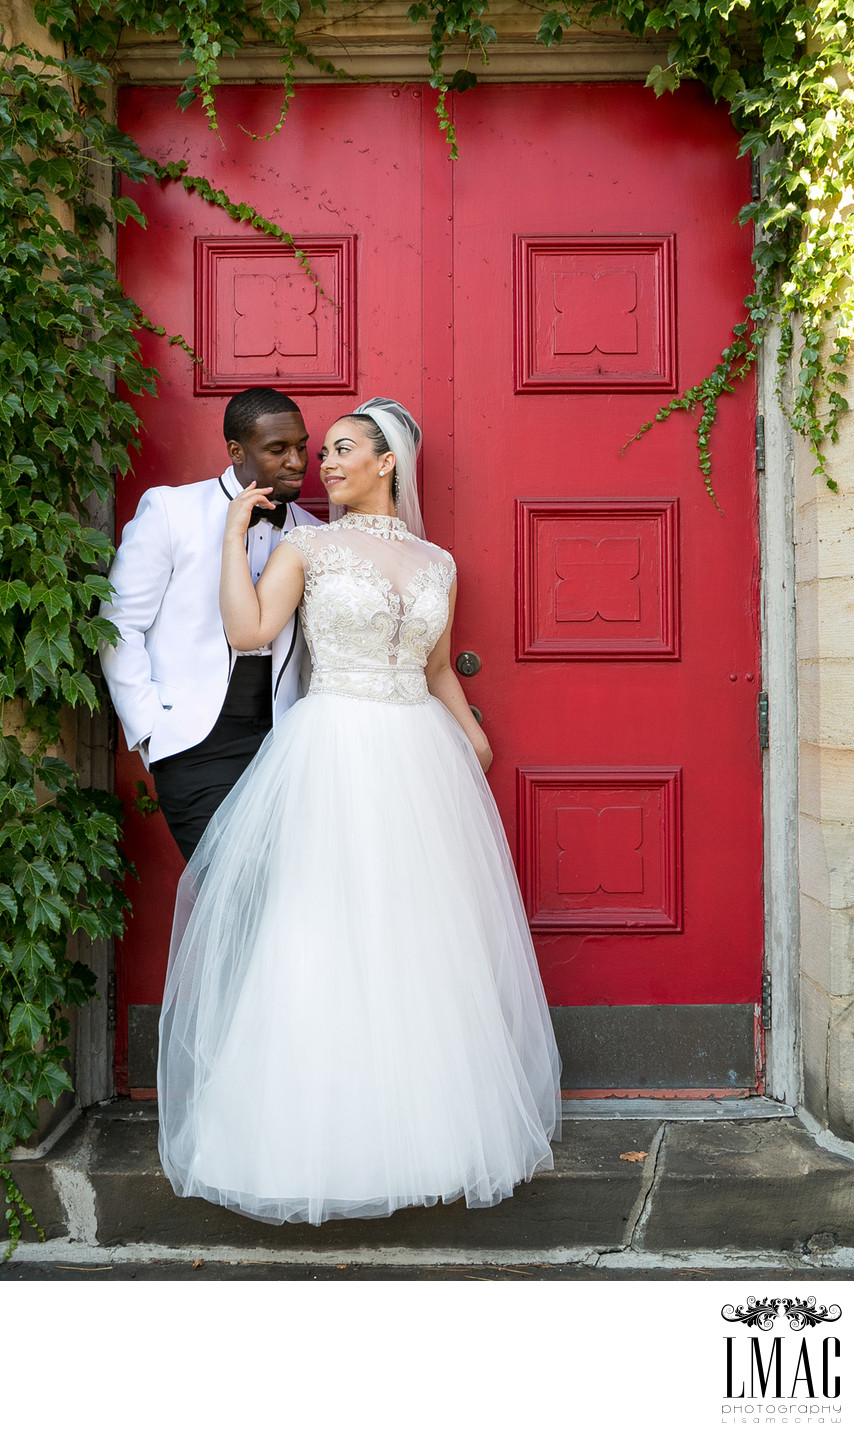 Stunning Bride and Groom Portrait in Canton Ohio